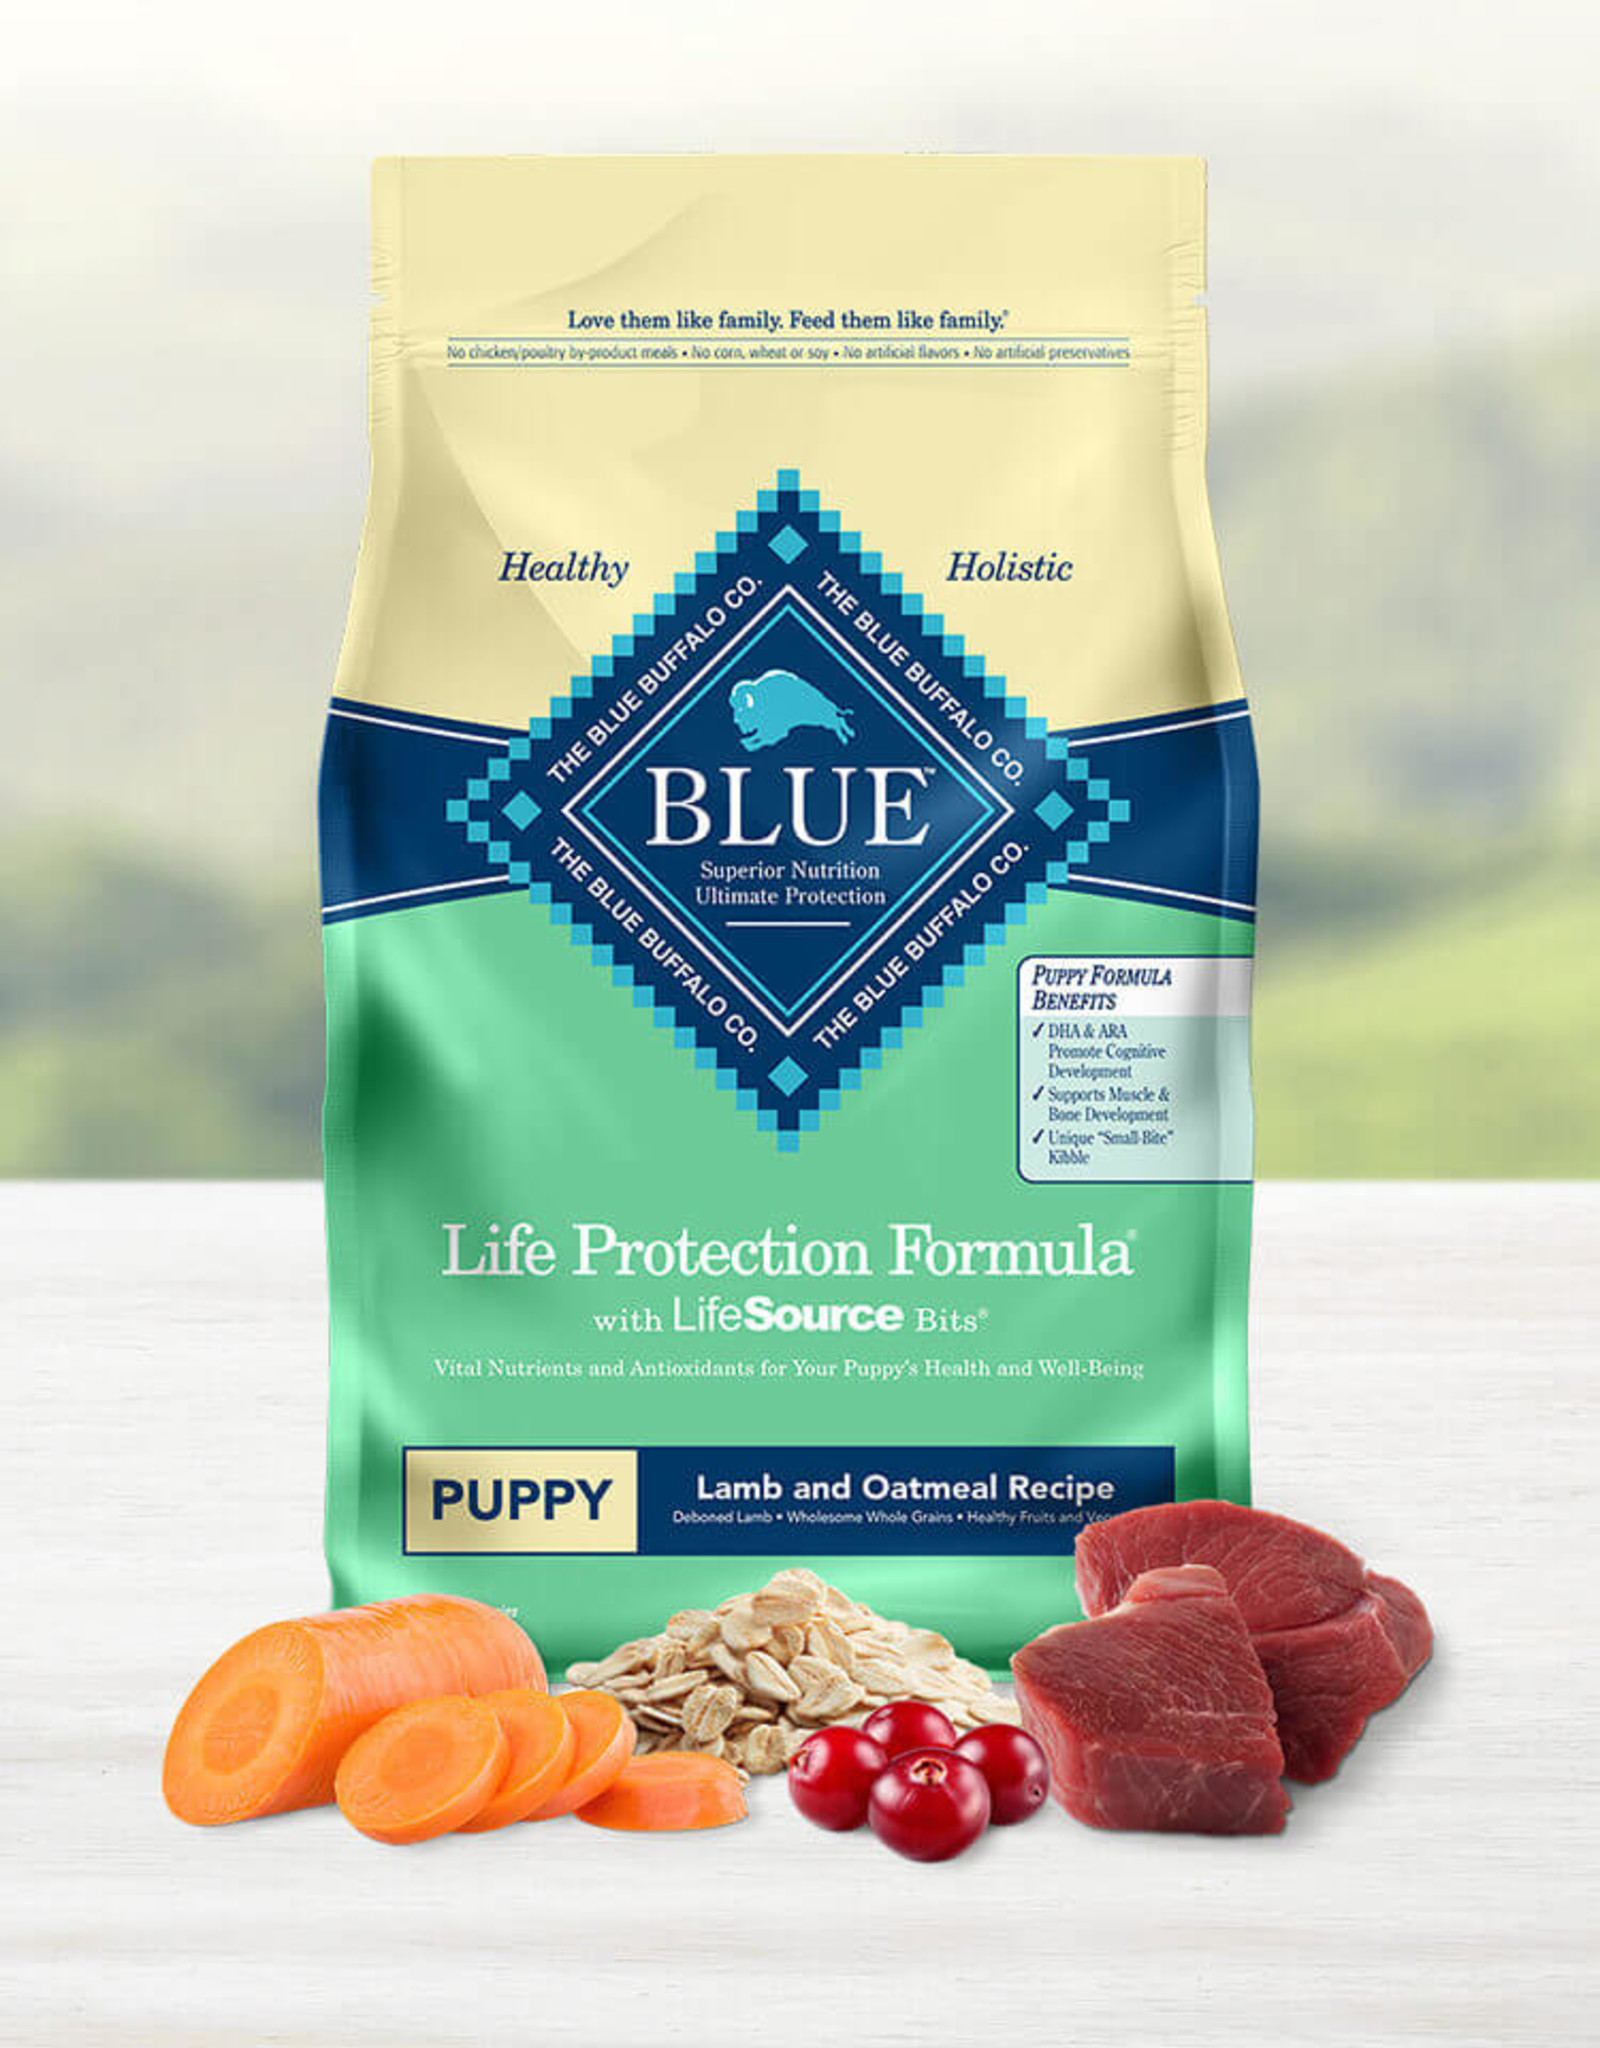 BLUE BUFFALO COMPANY BLUE BUFFALO PUPPY LAMB & OAT 30LBS